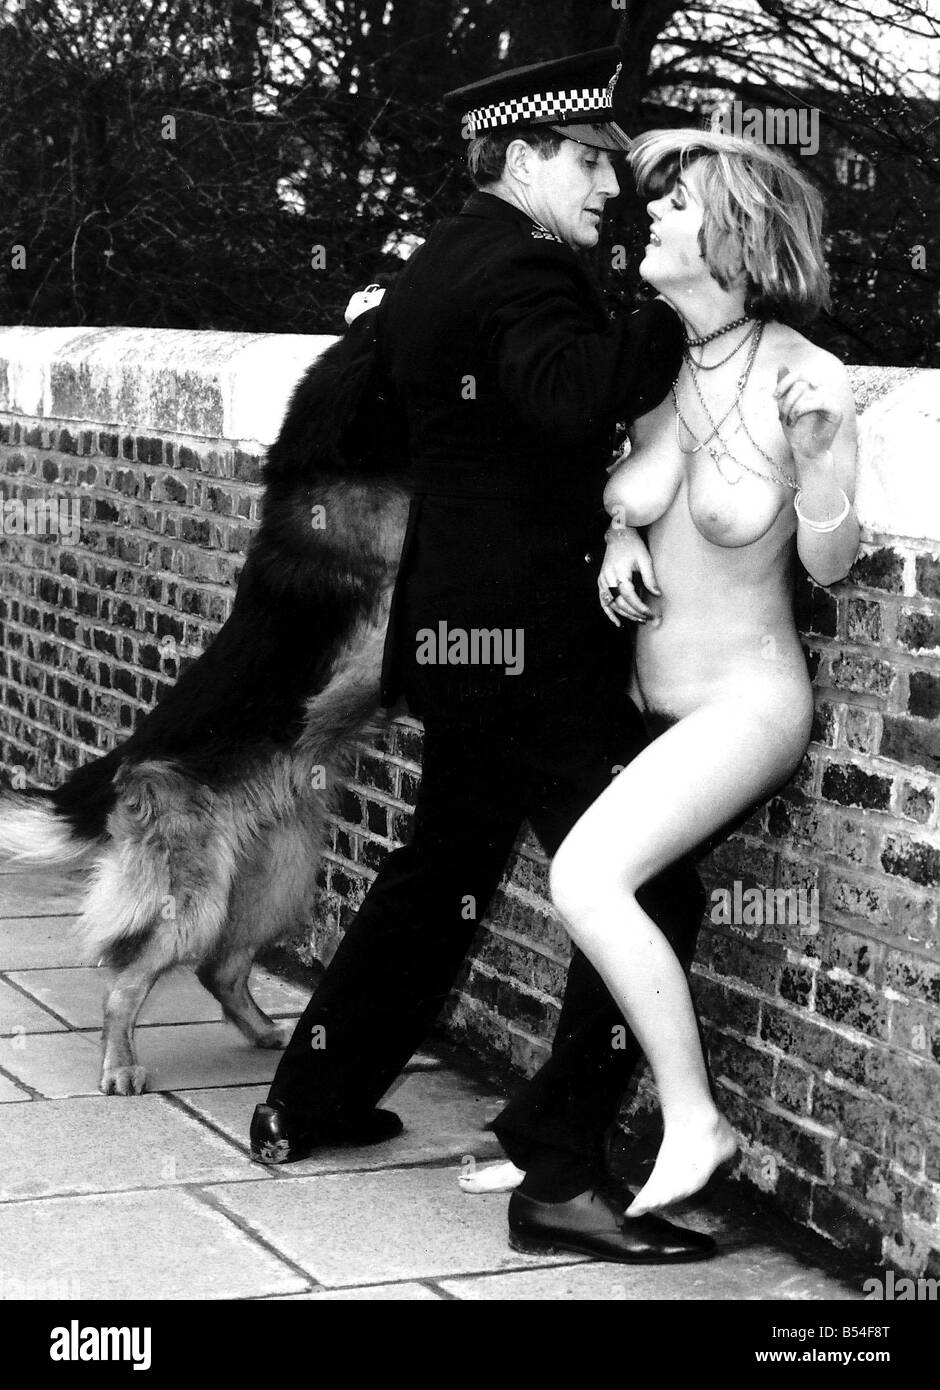 Steakers Sally Cooper is arrested by a policeman after her streak across Kingston Bridge Dbase MSI Stock Photo